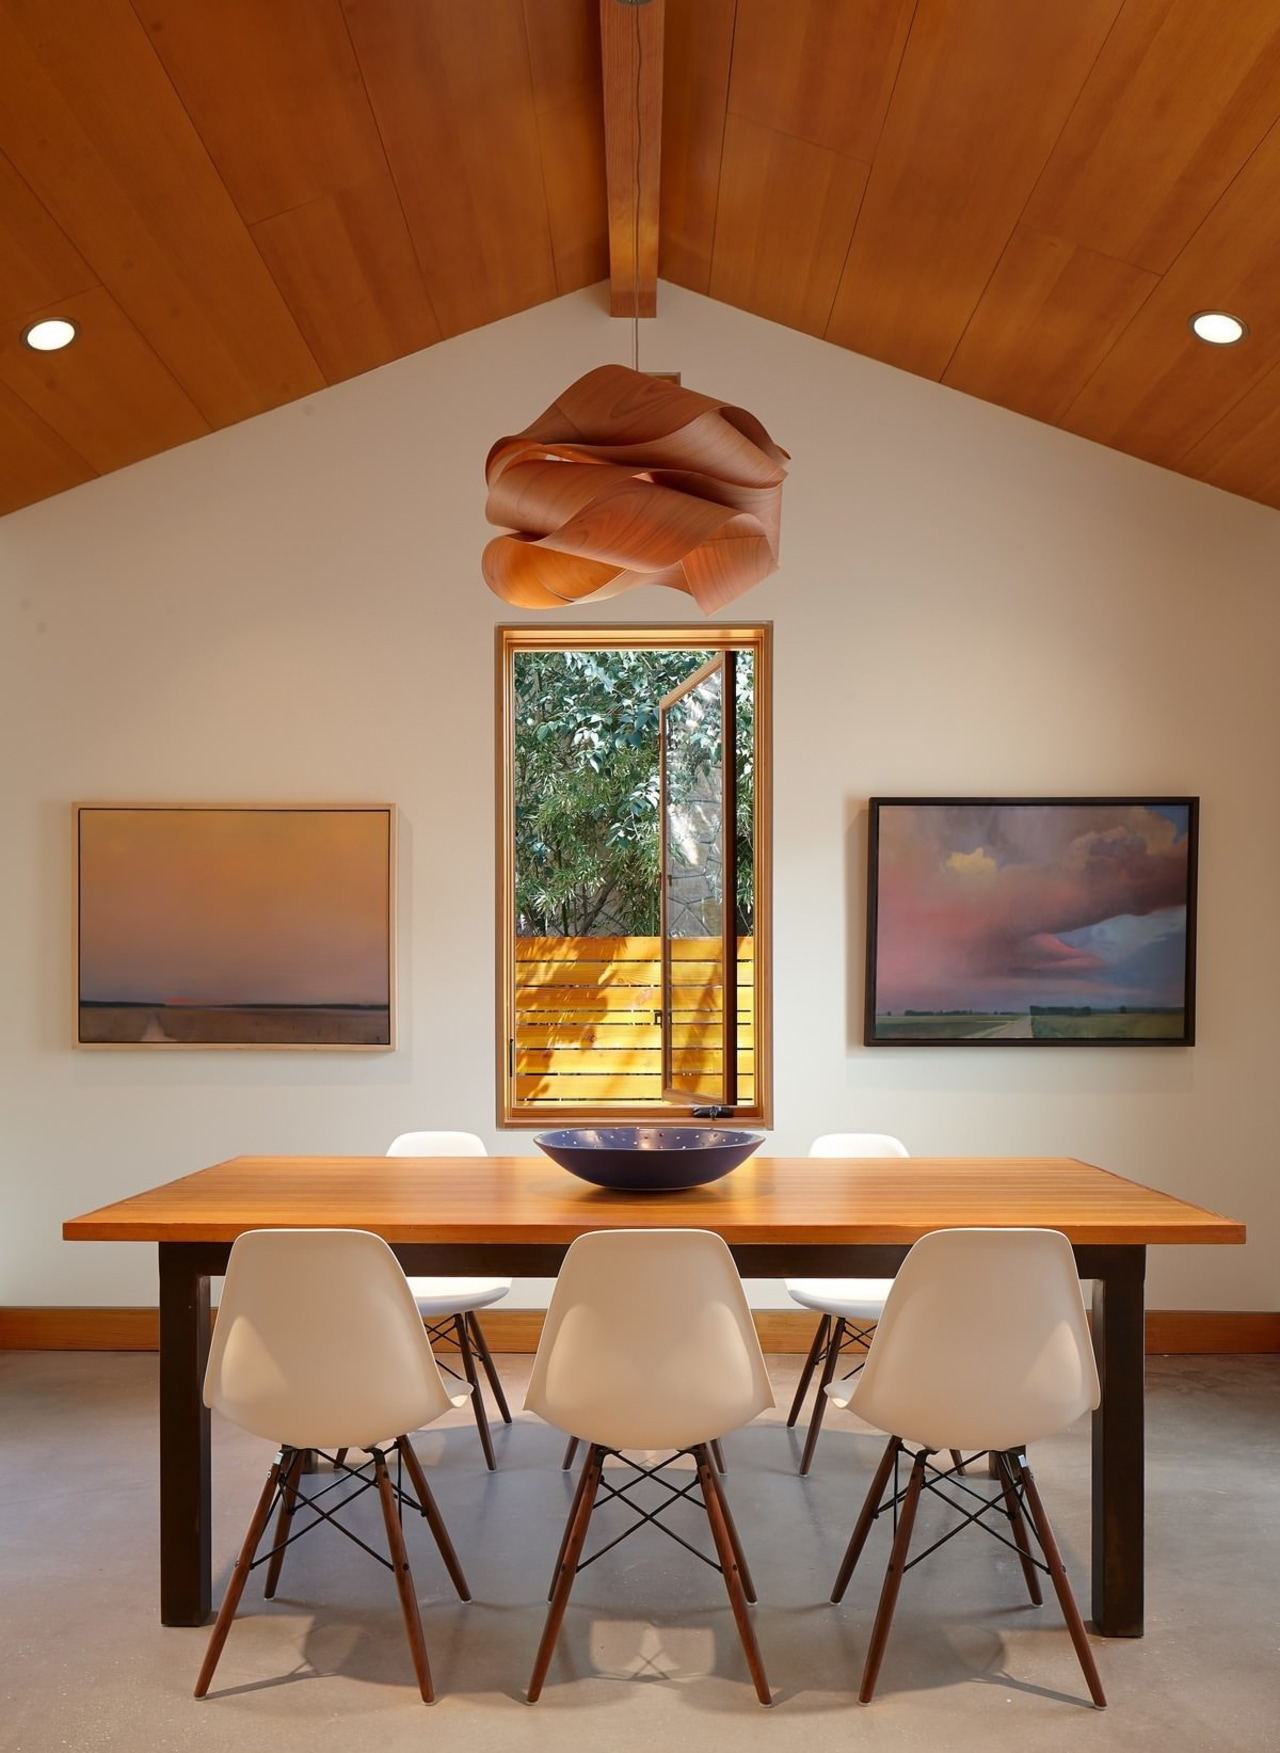 The chandelier makes for an interesting focal point. architecture, ceiling, chair, dining room, furniture, home, house, interior design, light fixture, table, brown